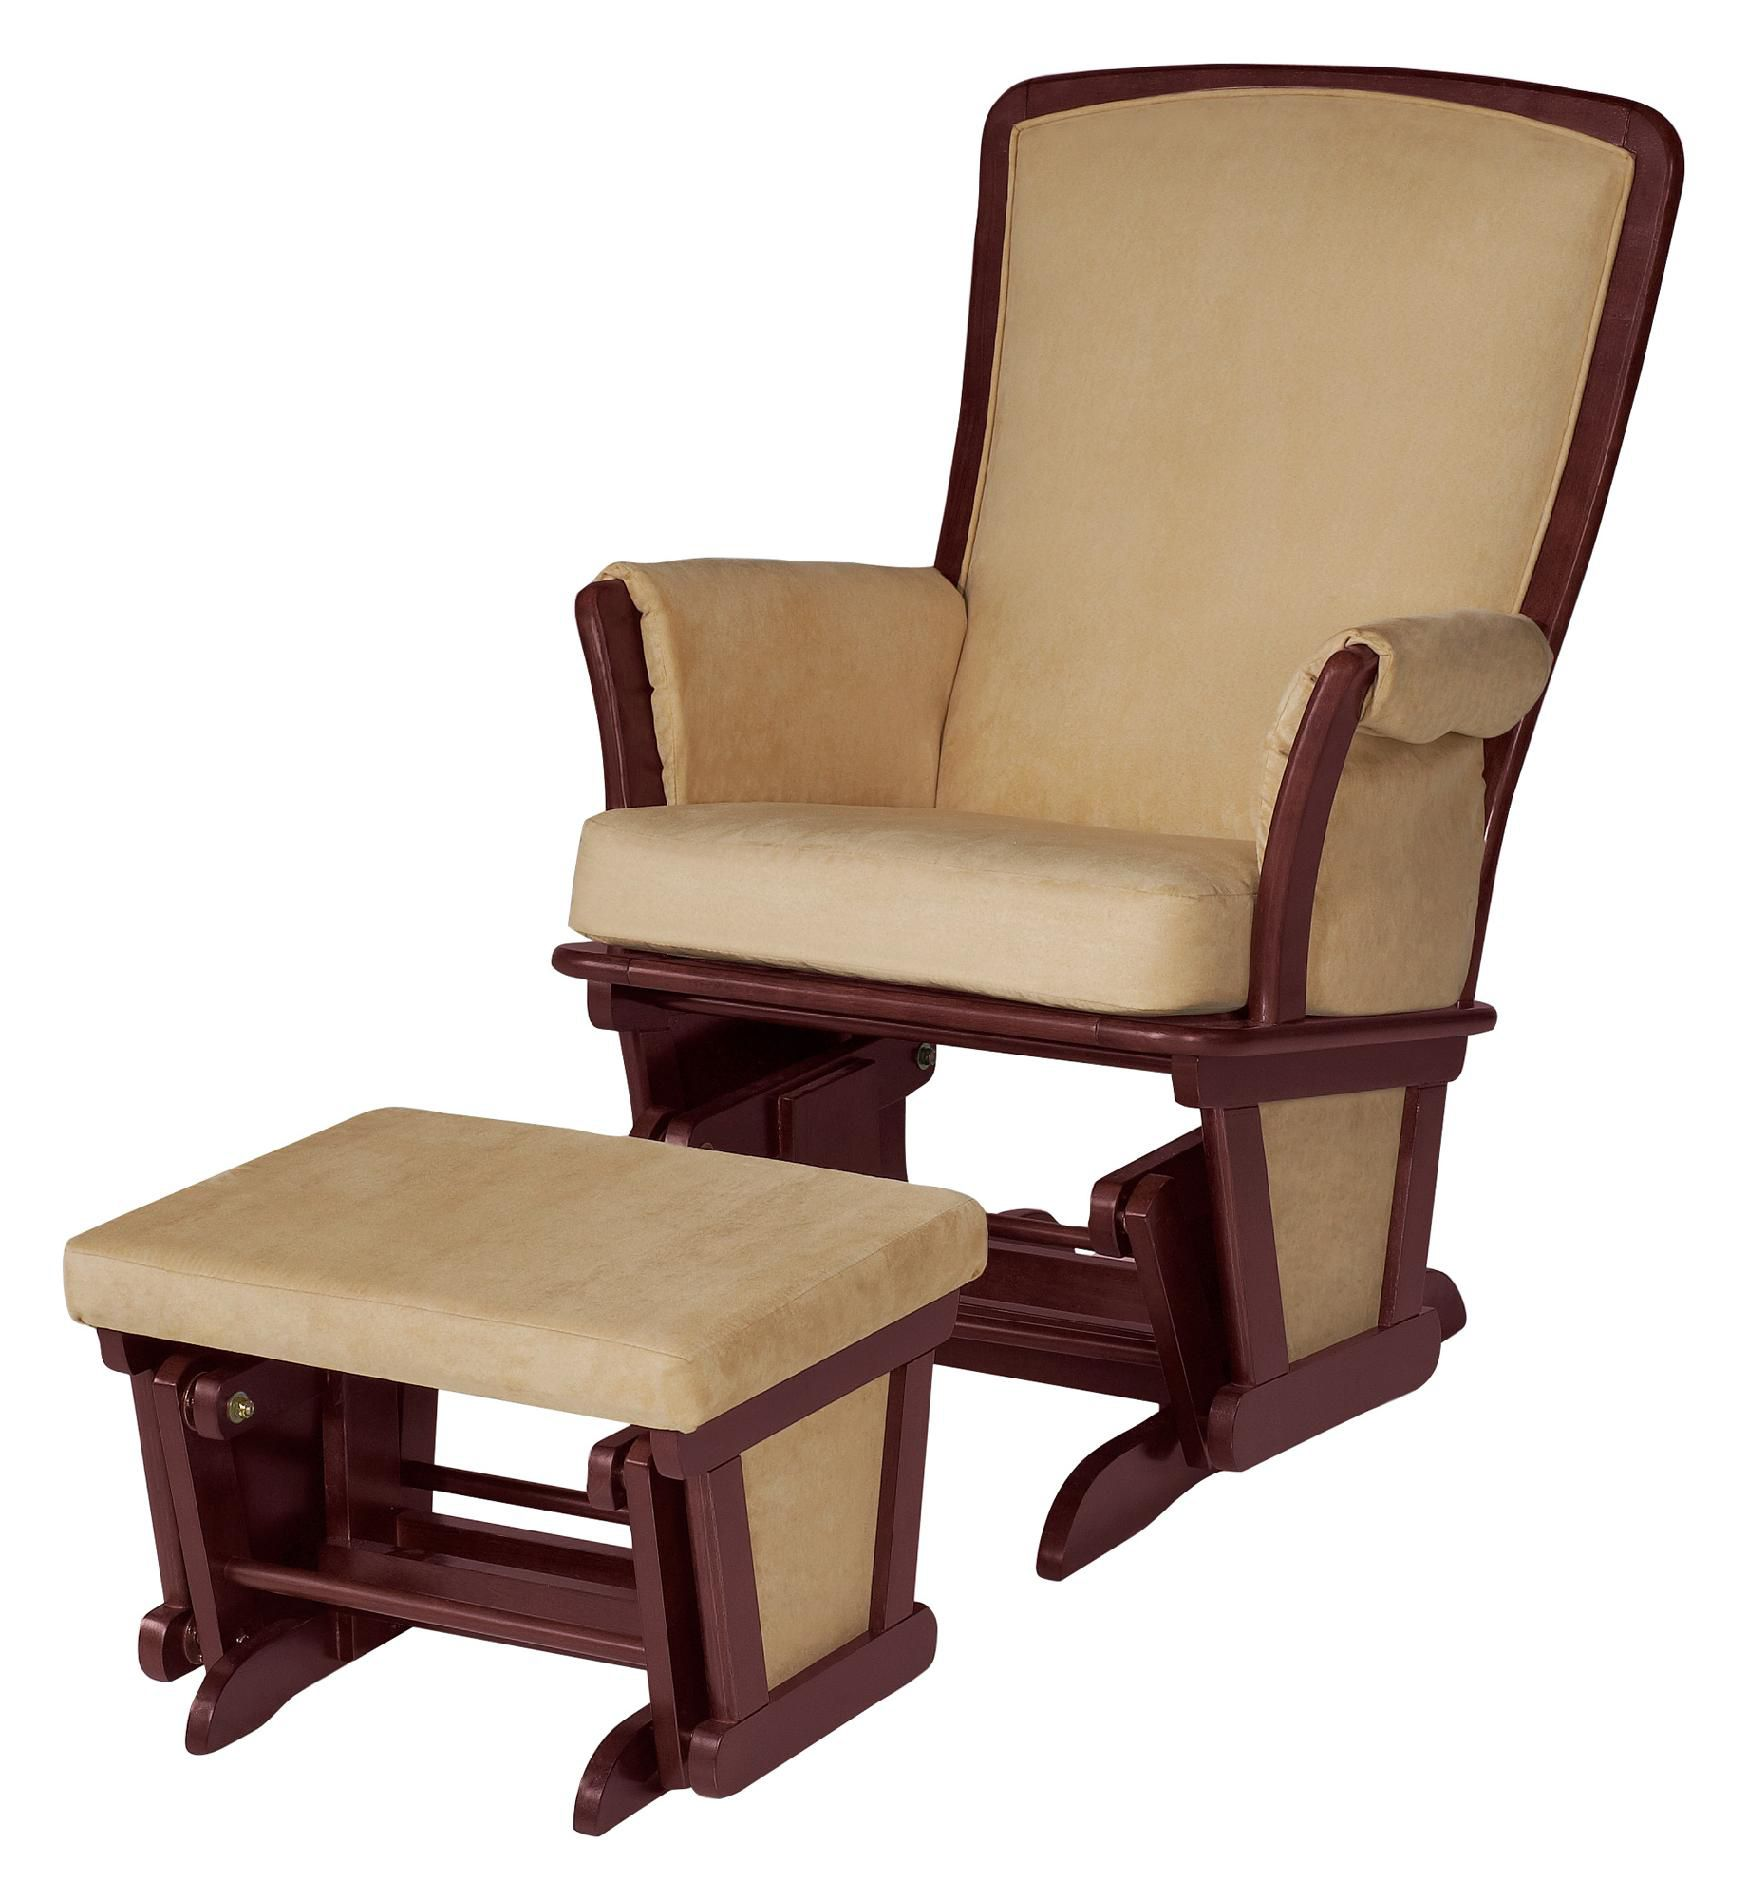 kids upholstered rocking chair kiddies covers for sale in johannesburg delta children glider and ottoman chocolate